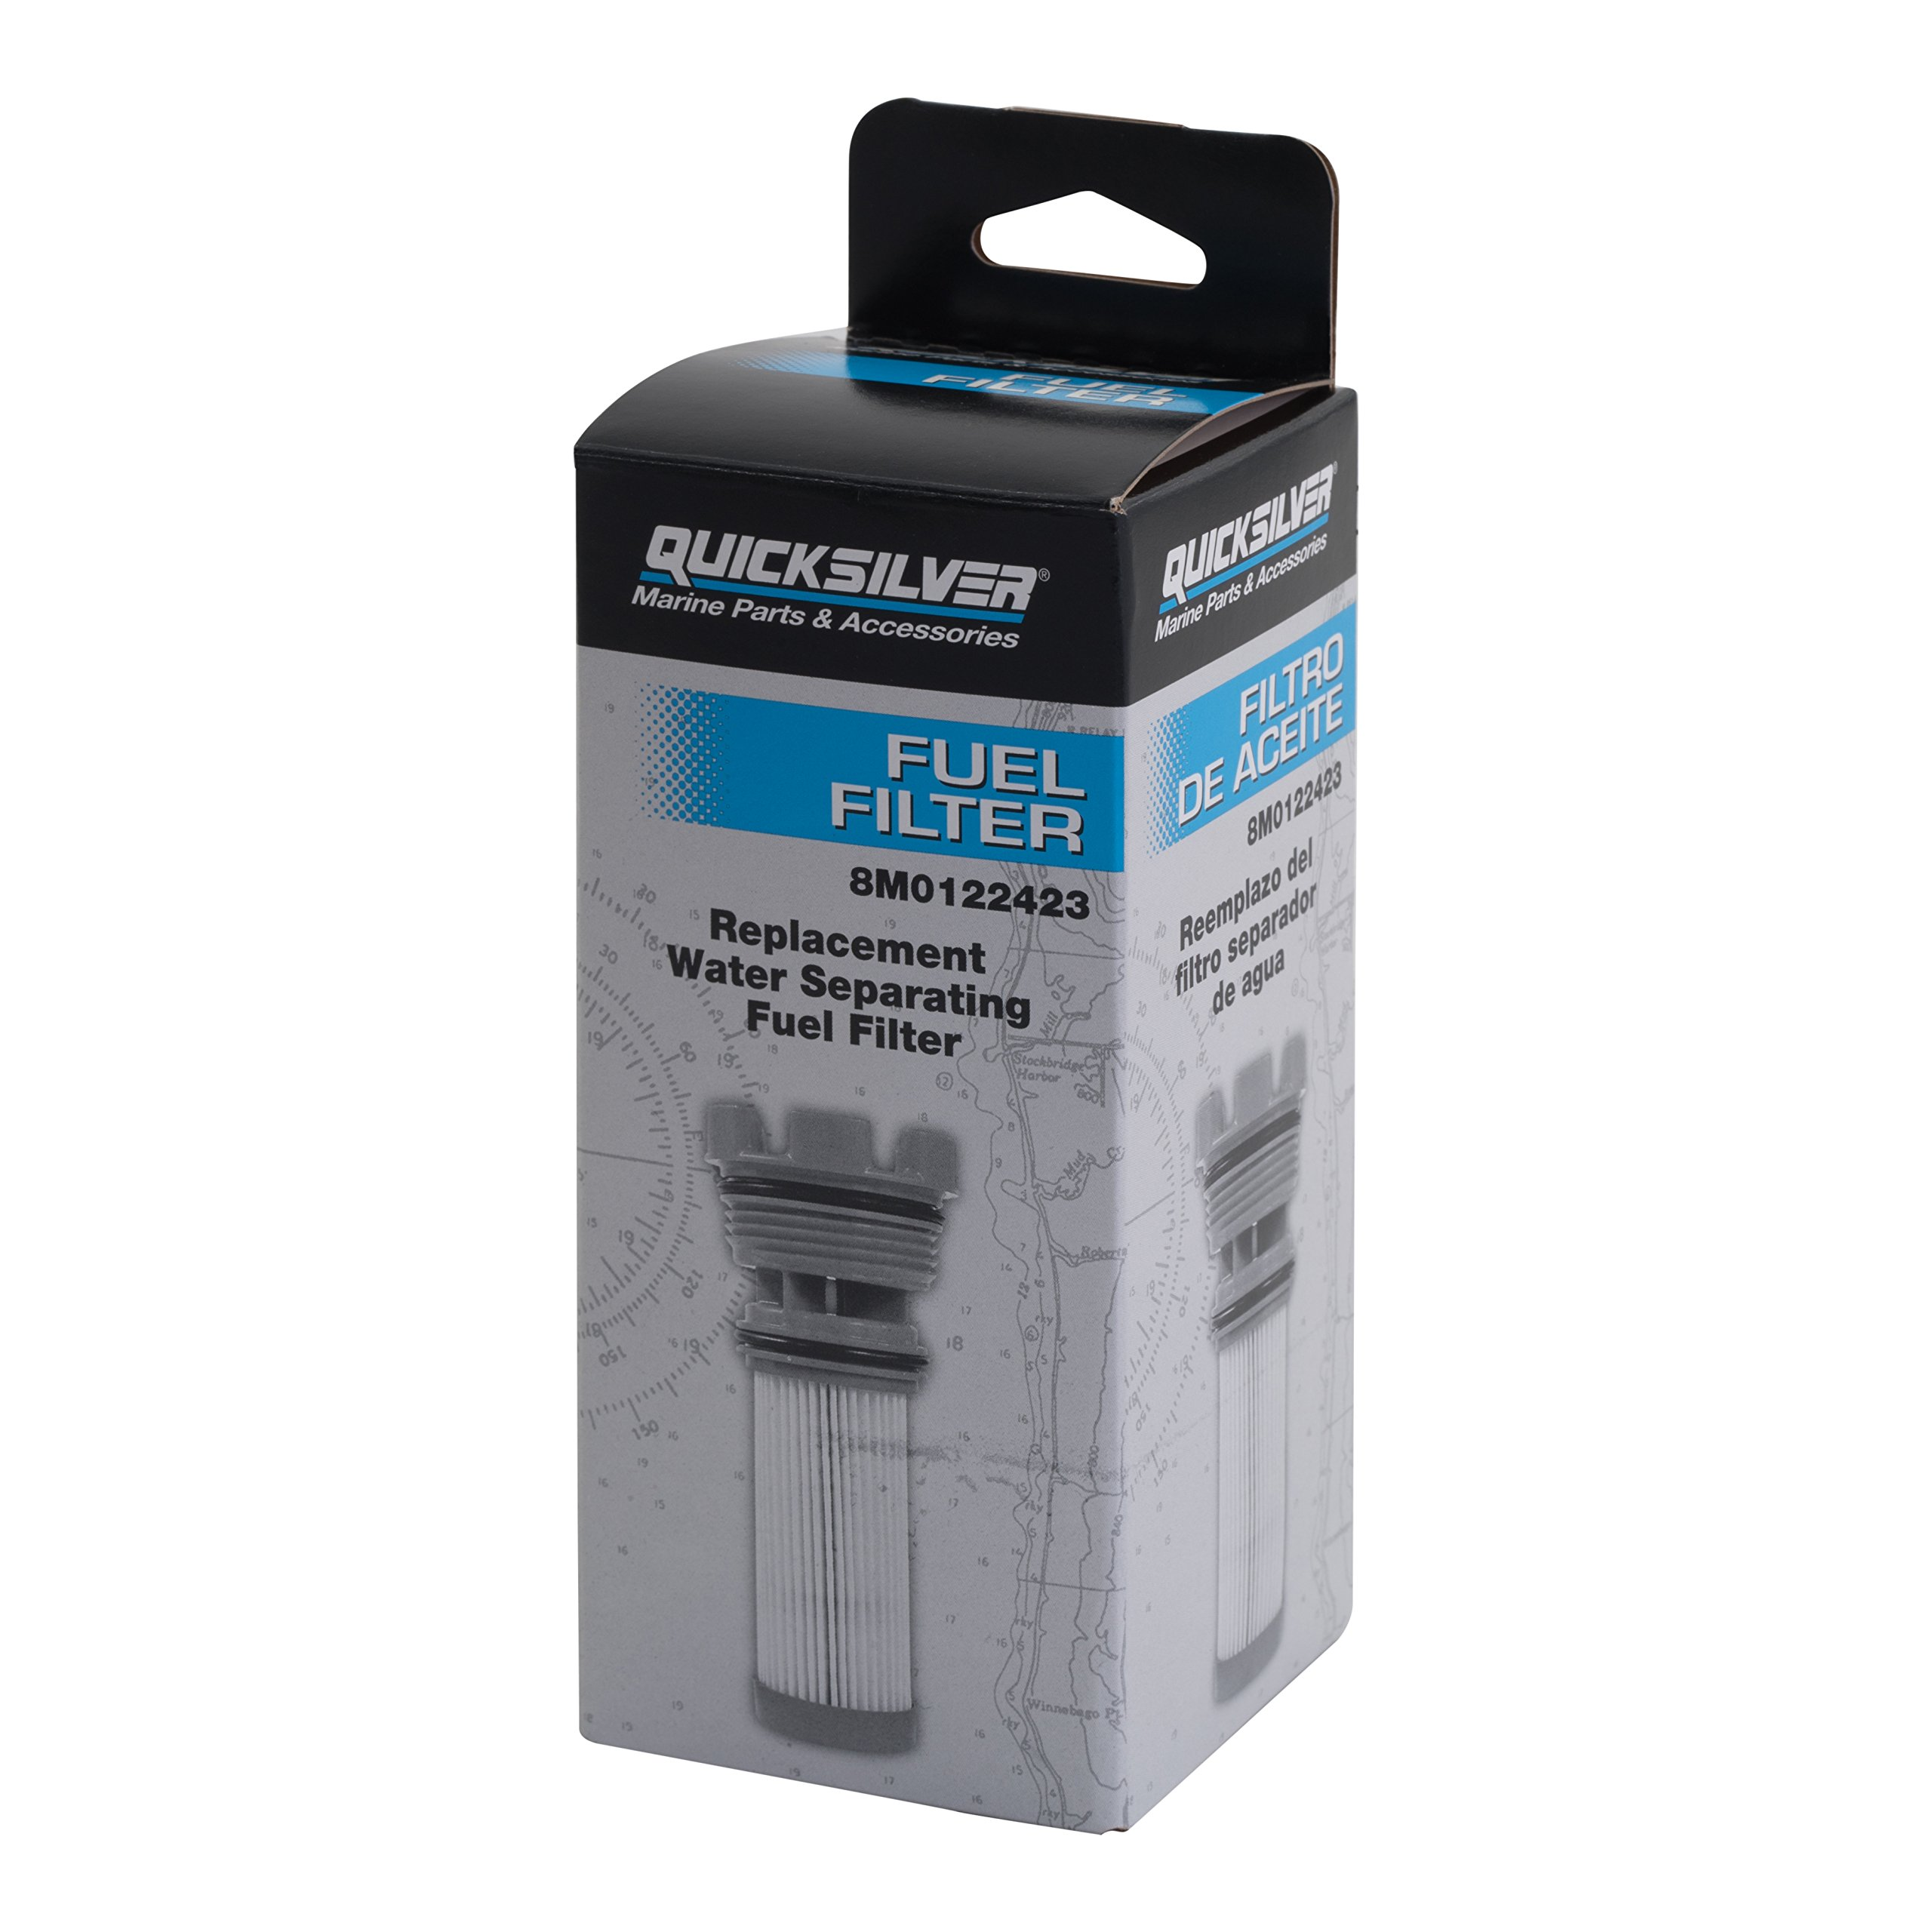 Quicksilver 8m0122423 Fuel Filter Element Mercury And Mariner Outboards Mercruiser Stern Drive Engines 35 8m0060041 Filters Sports